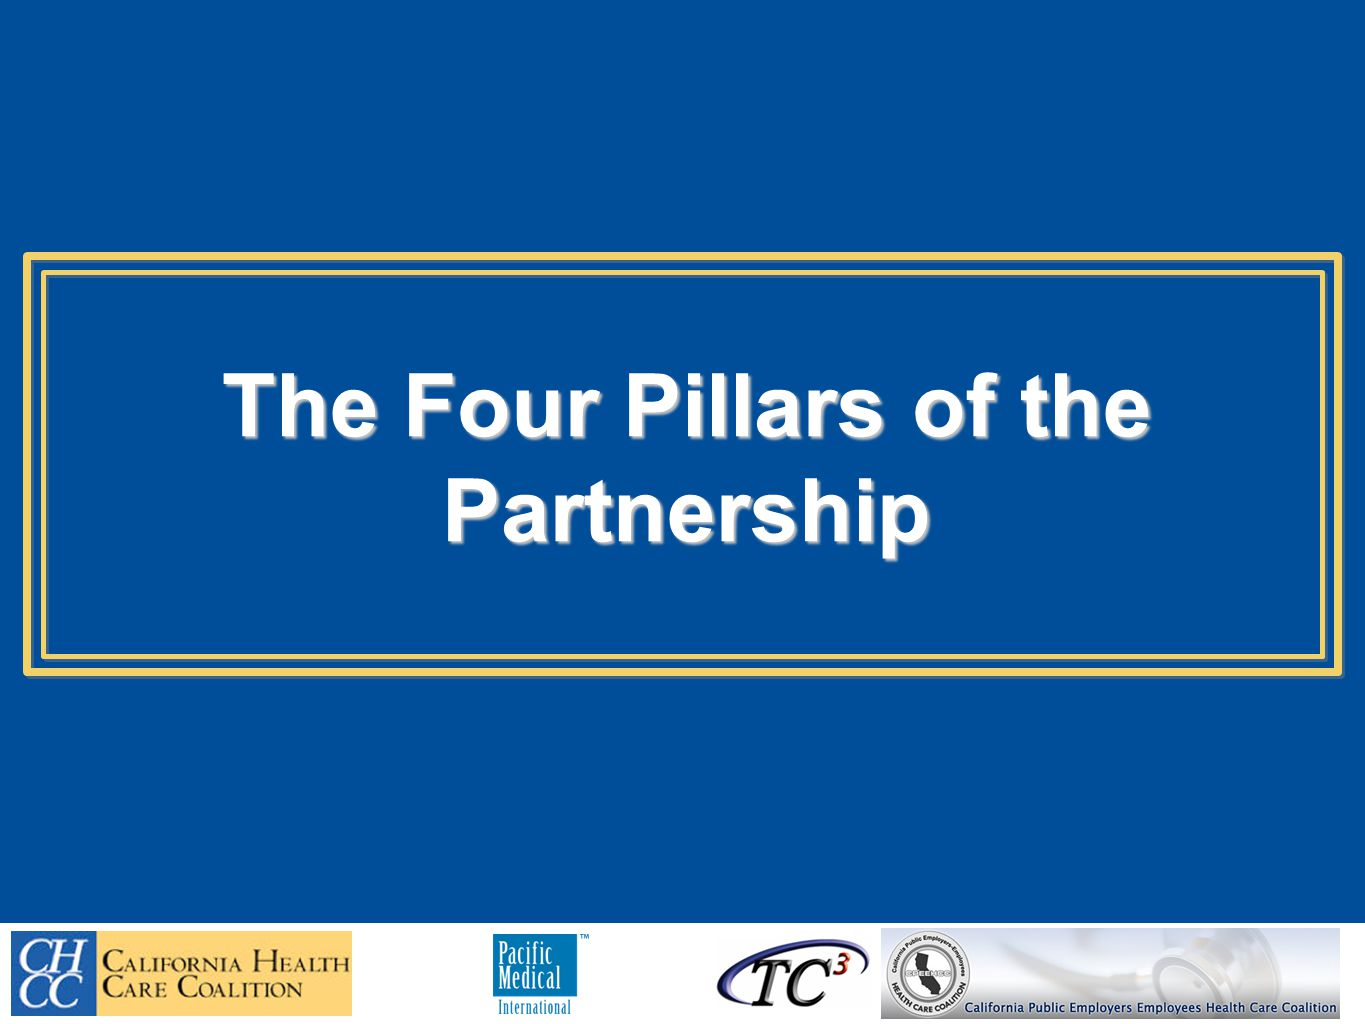 The Four Pillars of the Partnership